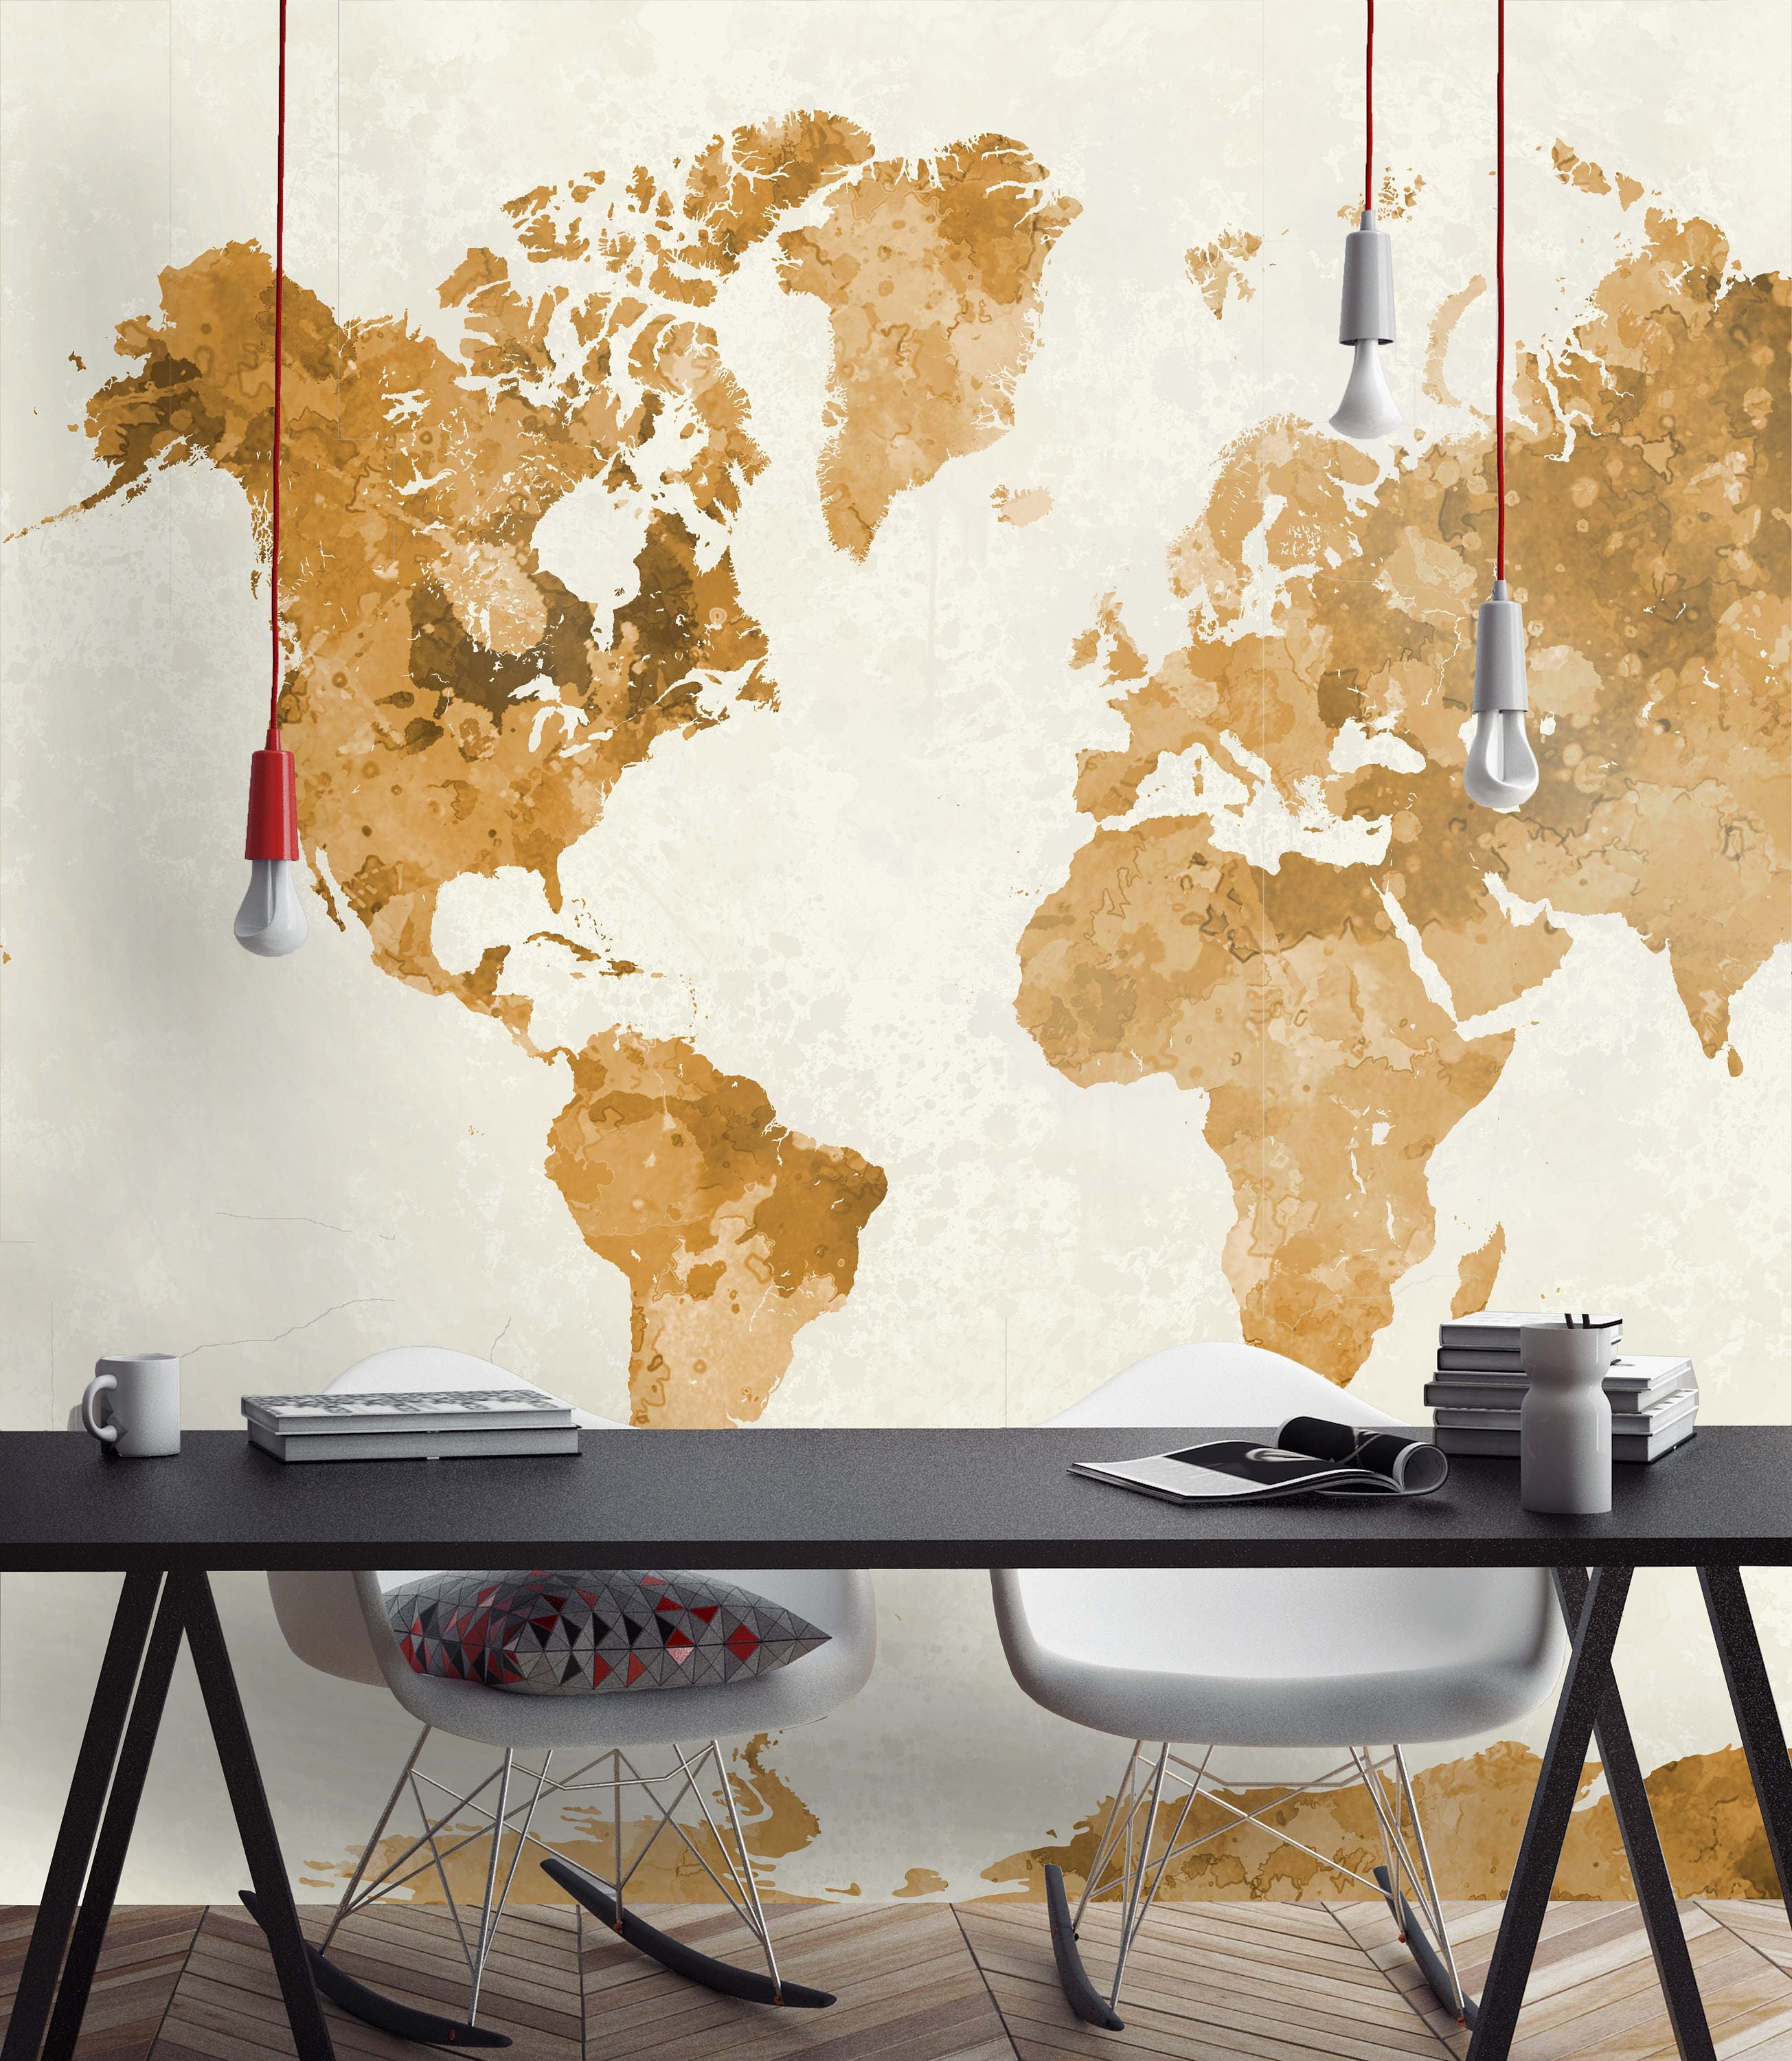 World map wallpaper planisphere wallpaper vintage map map old world map wallpaper planisphere wallpaper vintage map map old map antique map world vintage globe custom globe world globe gumiabroncs